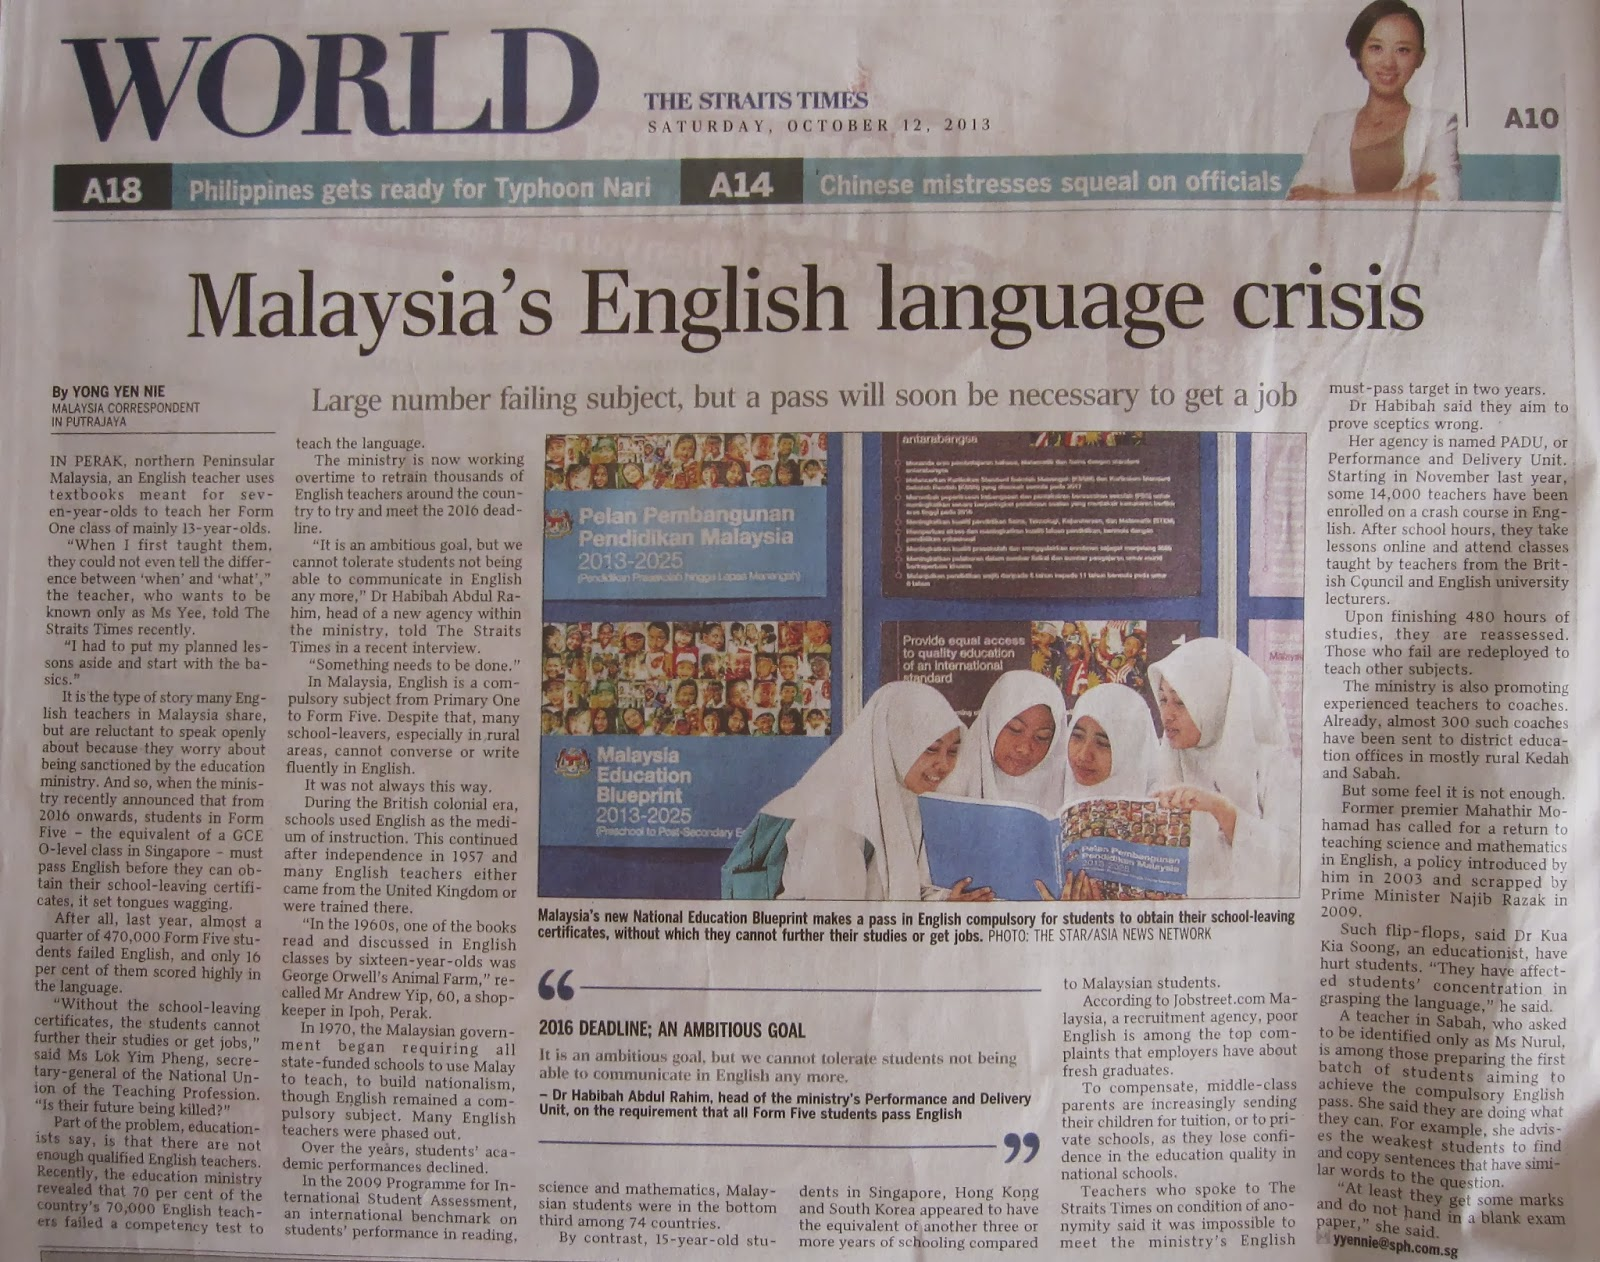 cause of decline in english proficiency in malaysia Been a continual decline in english proficiency among school leavers a contributing factor to this is the fact that a pass in english is not compulsory in any of the major public examinations.